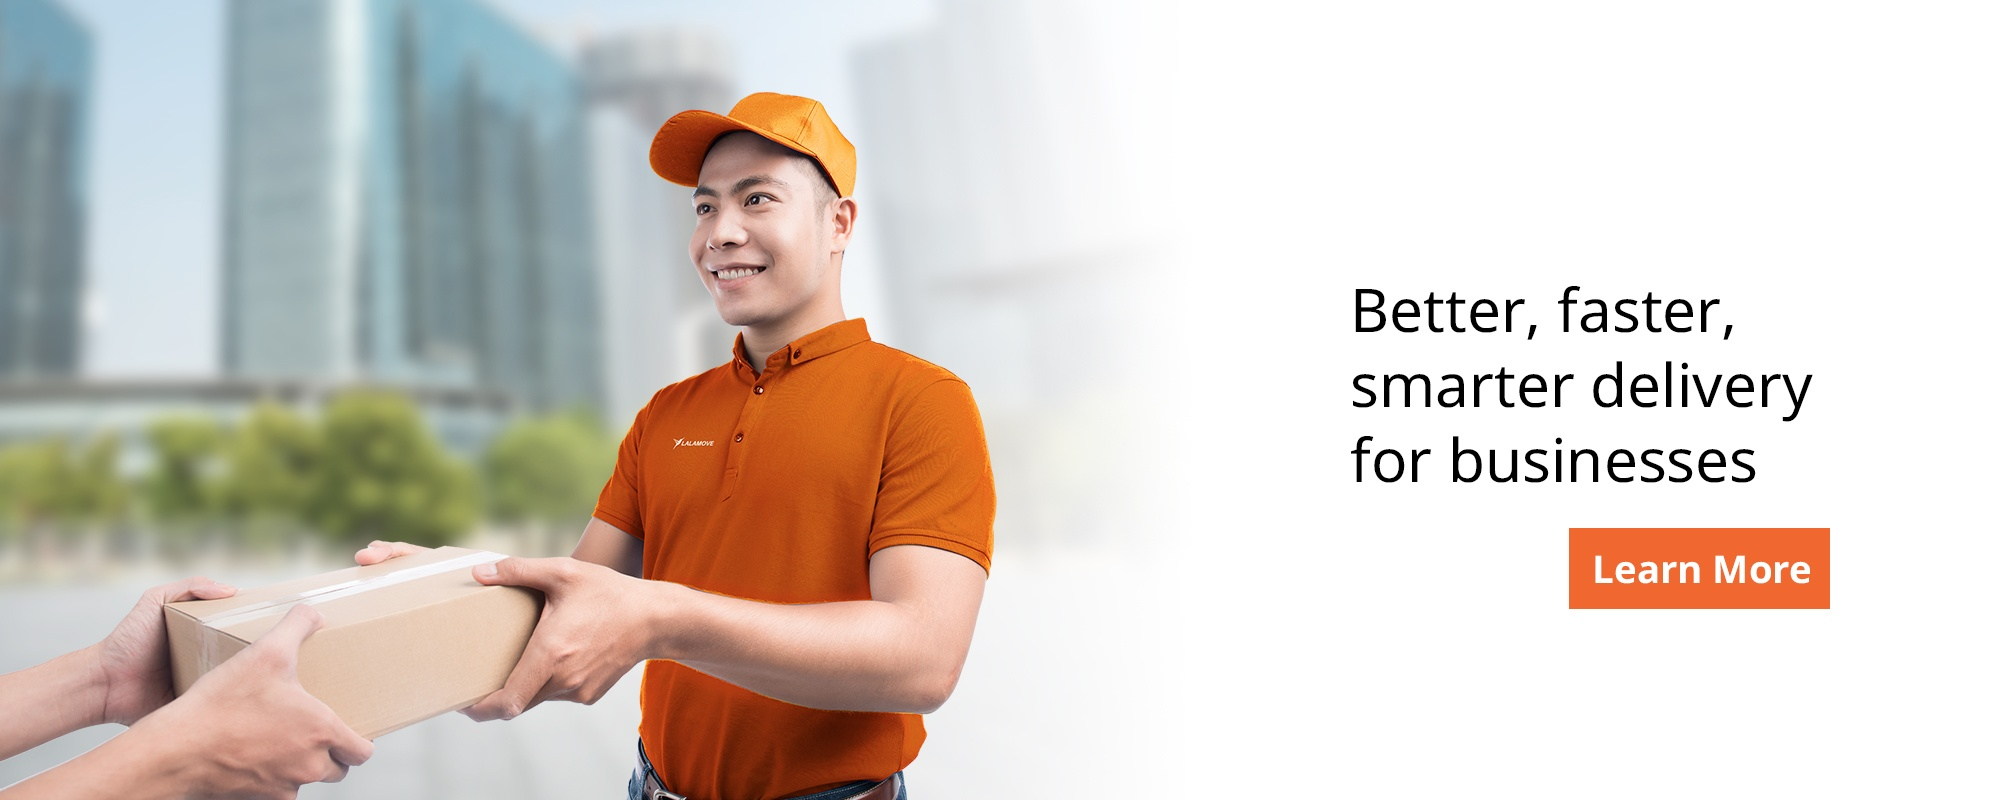 Better, faster, smarter delivery for businesses